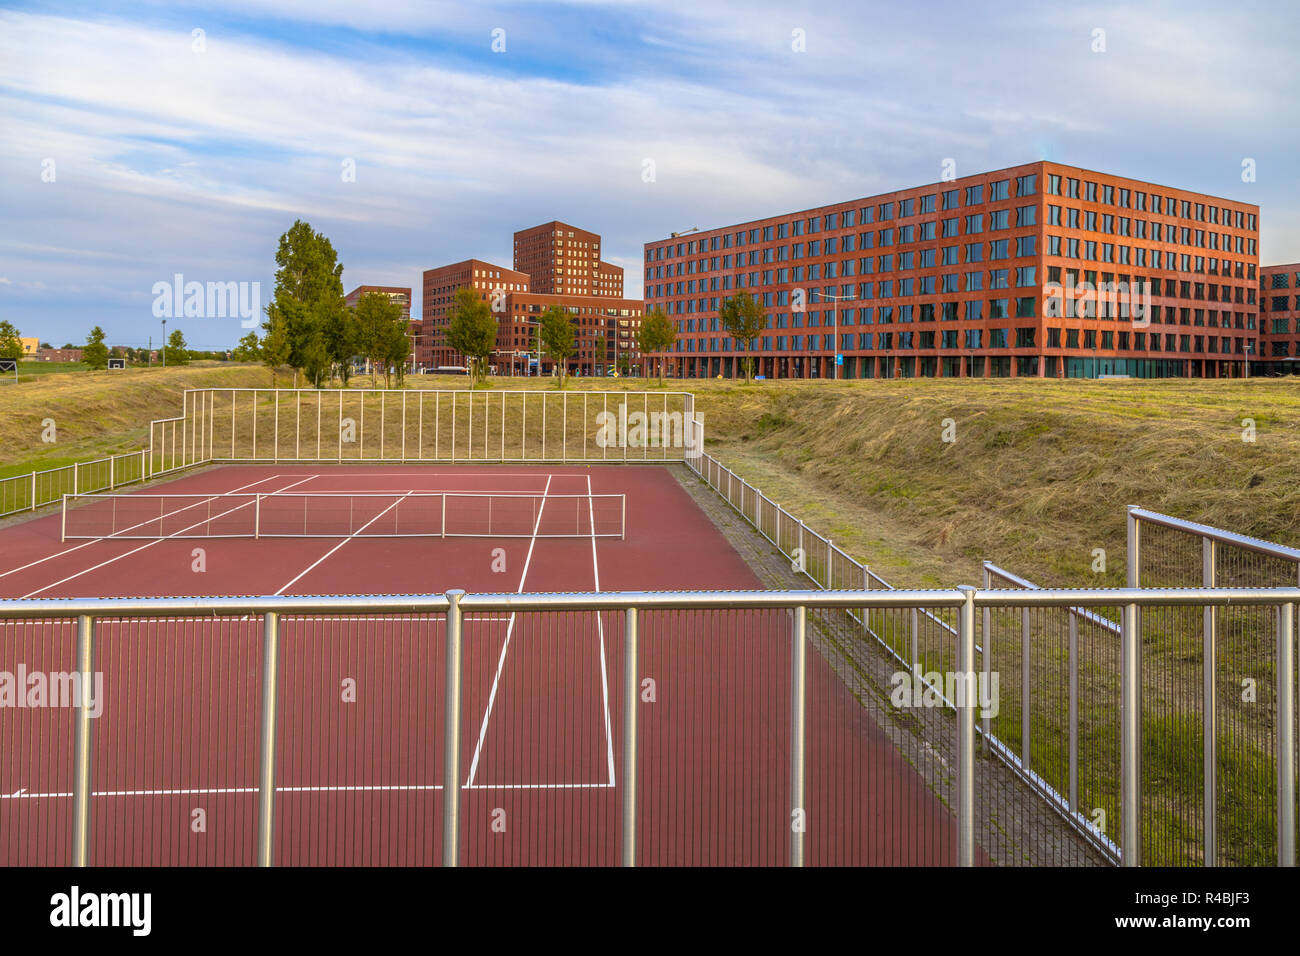 Public Sport facility in park near financial district offices in suburban area in The Hague, Netherlands - Stock Image